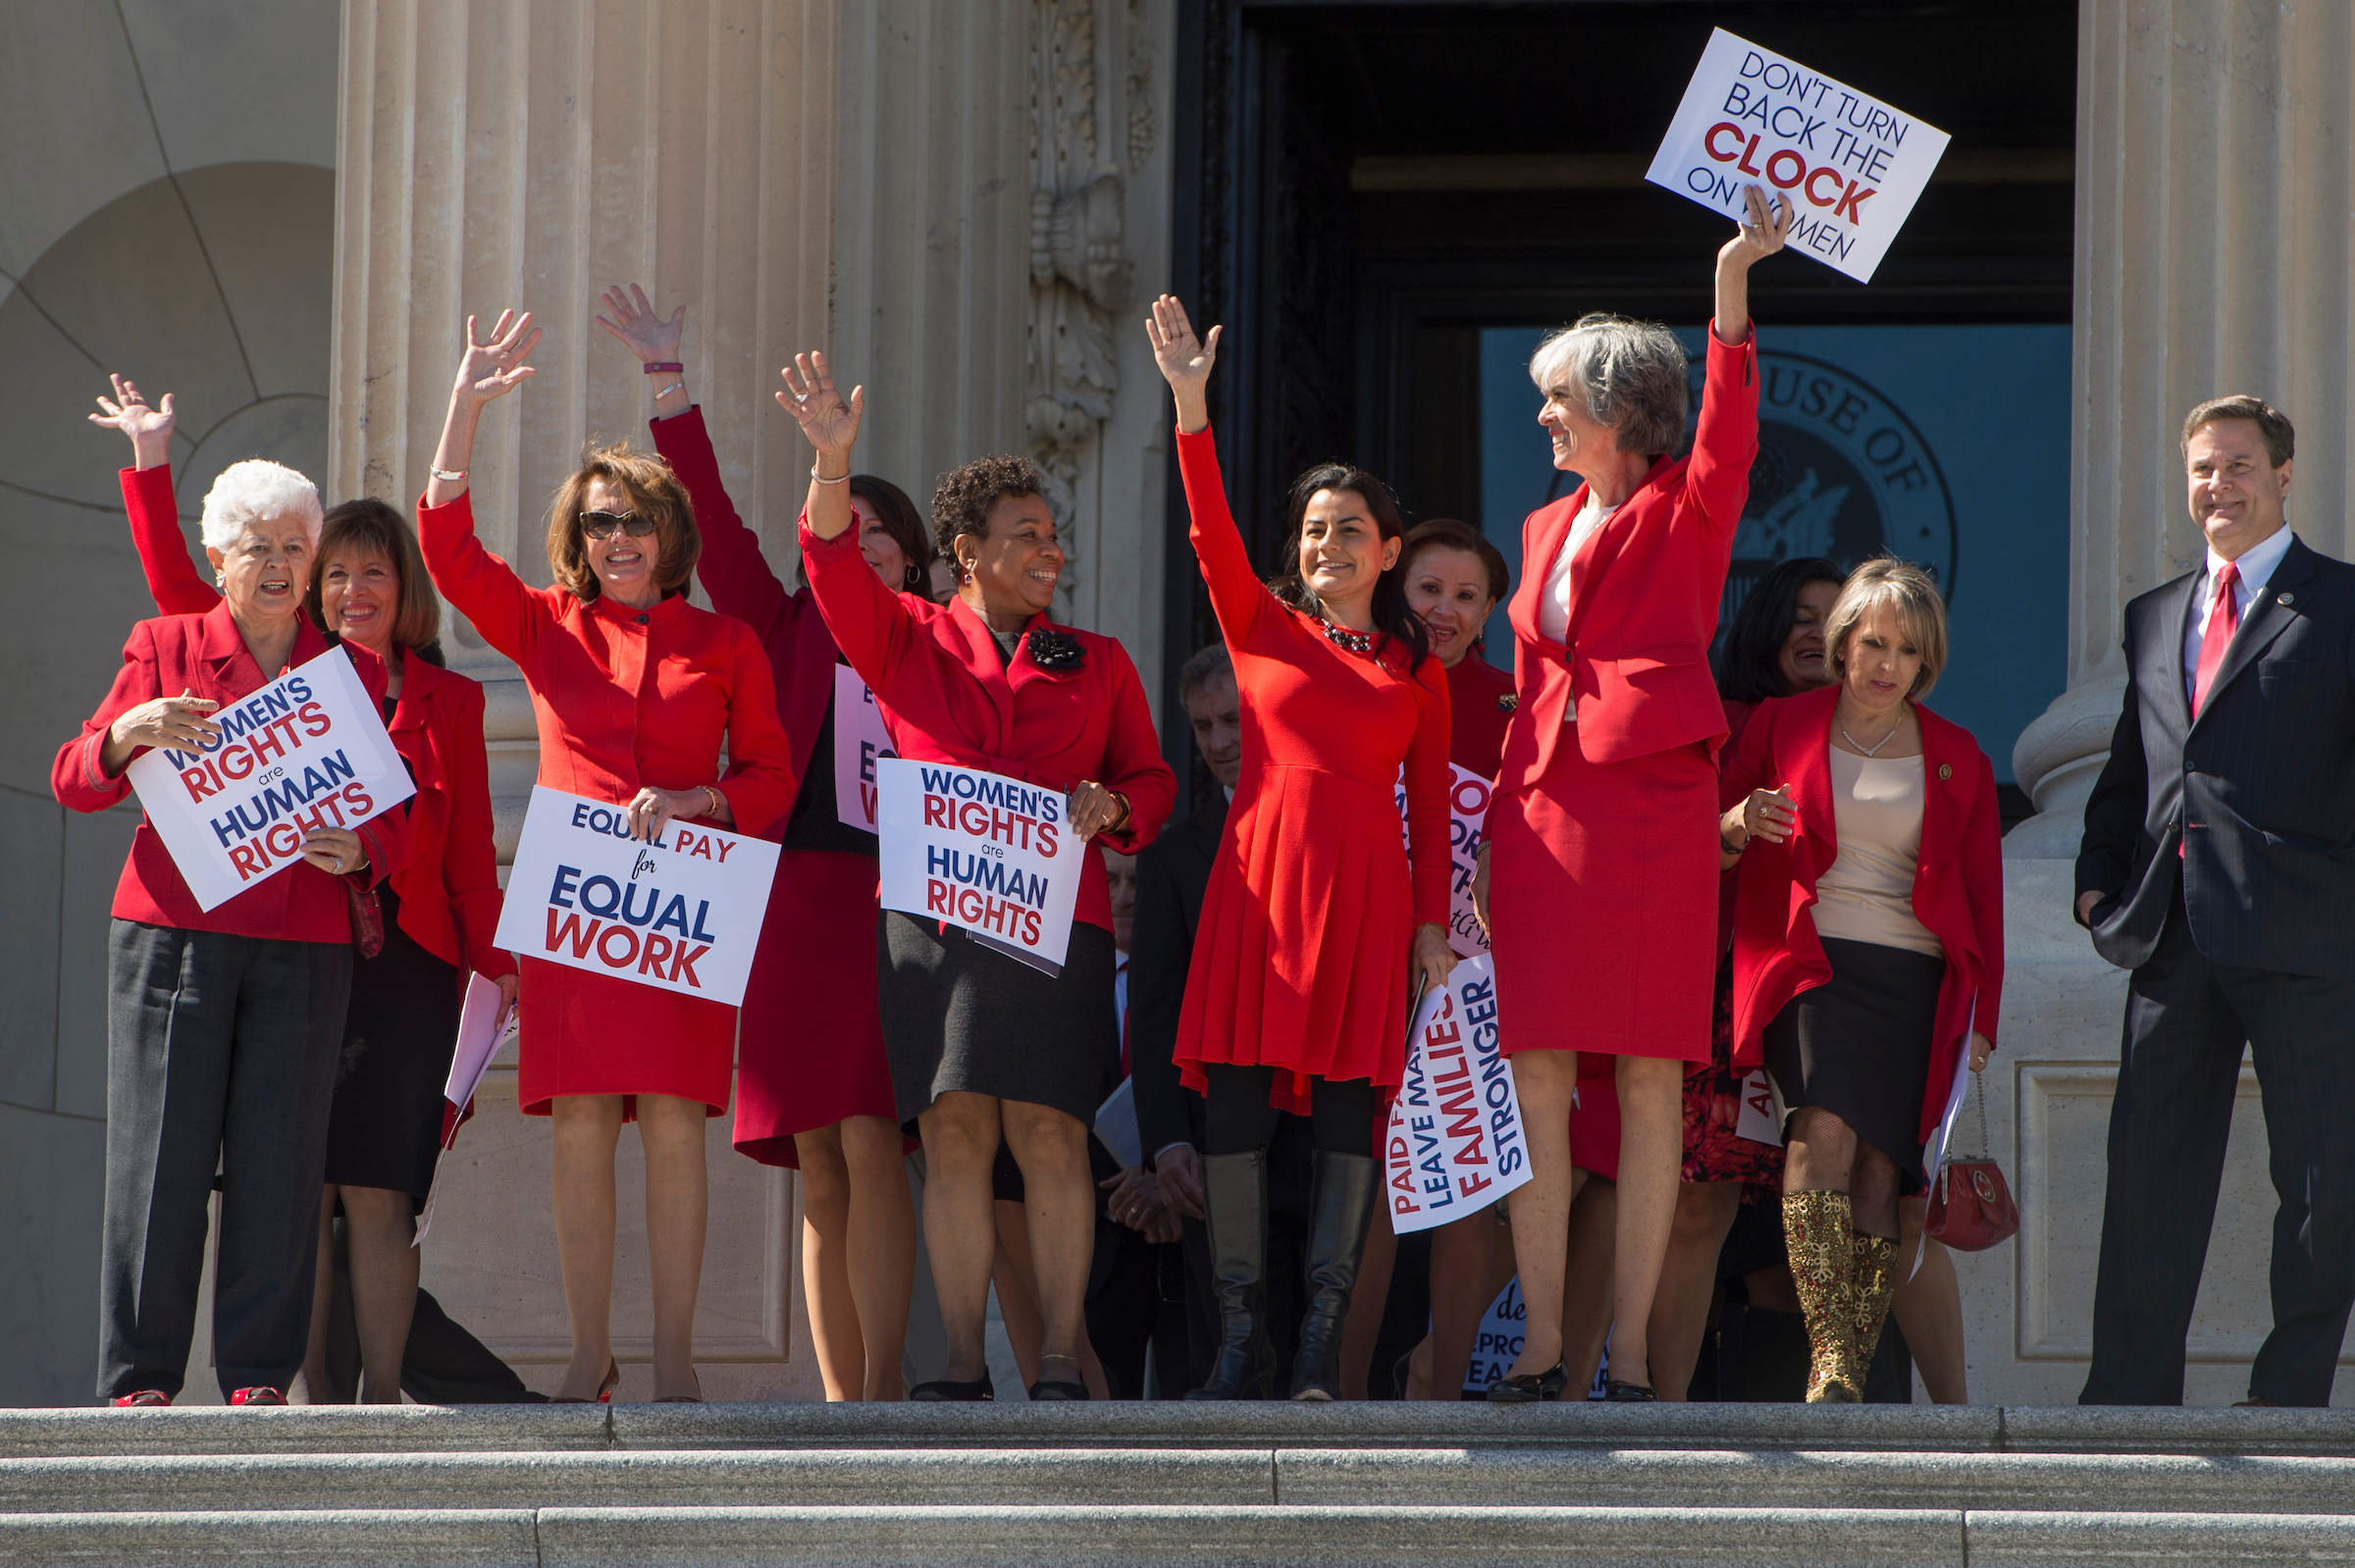 UNITED STATES - MARCH 8: From left, Reps. Grace Napolitano, D-Calif., Jackie Speier, D-Calif., House Minority Leader Nancy Pelosi, D-Calif., Cheri Bustos, D-Ill., Barbara Lee, D-Calif., Nanette Barragan, D-Calif., Nydia Velazquez, D-N.Y., Katherine Clark, D-Mass., and Michelle Lujan Grisham, D-N.M., wear red as they descend the House steps after walking out of the House Chamber to support A Day Without A Woman rallies happening across the country, March 8, 2017. The rallies coincide with International Women's Day. (Photo By Tom Williams/CQ Roll Call)